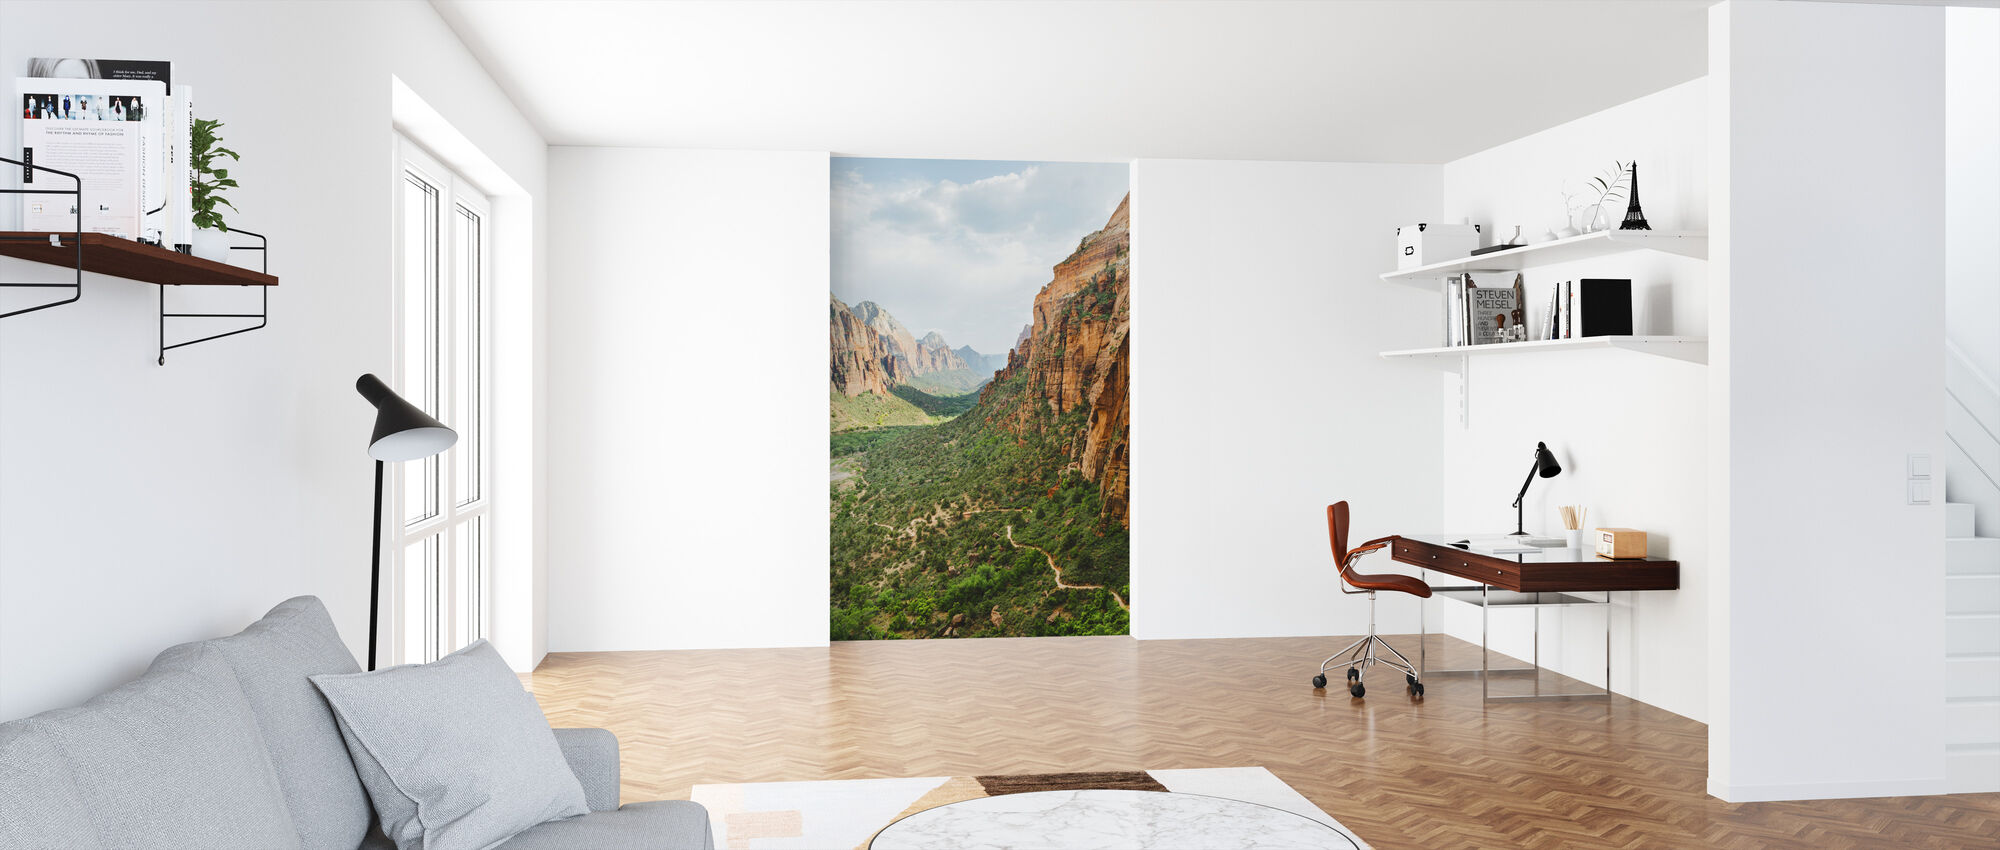 Valley in Zion National Park, USA - Wallpaper - Office